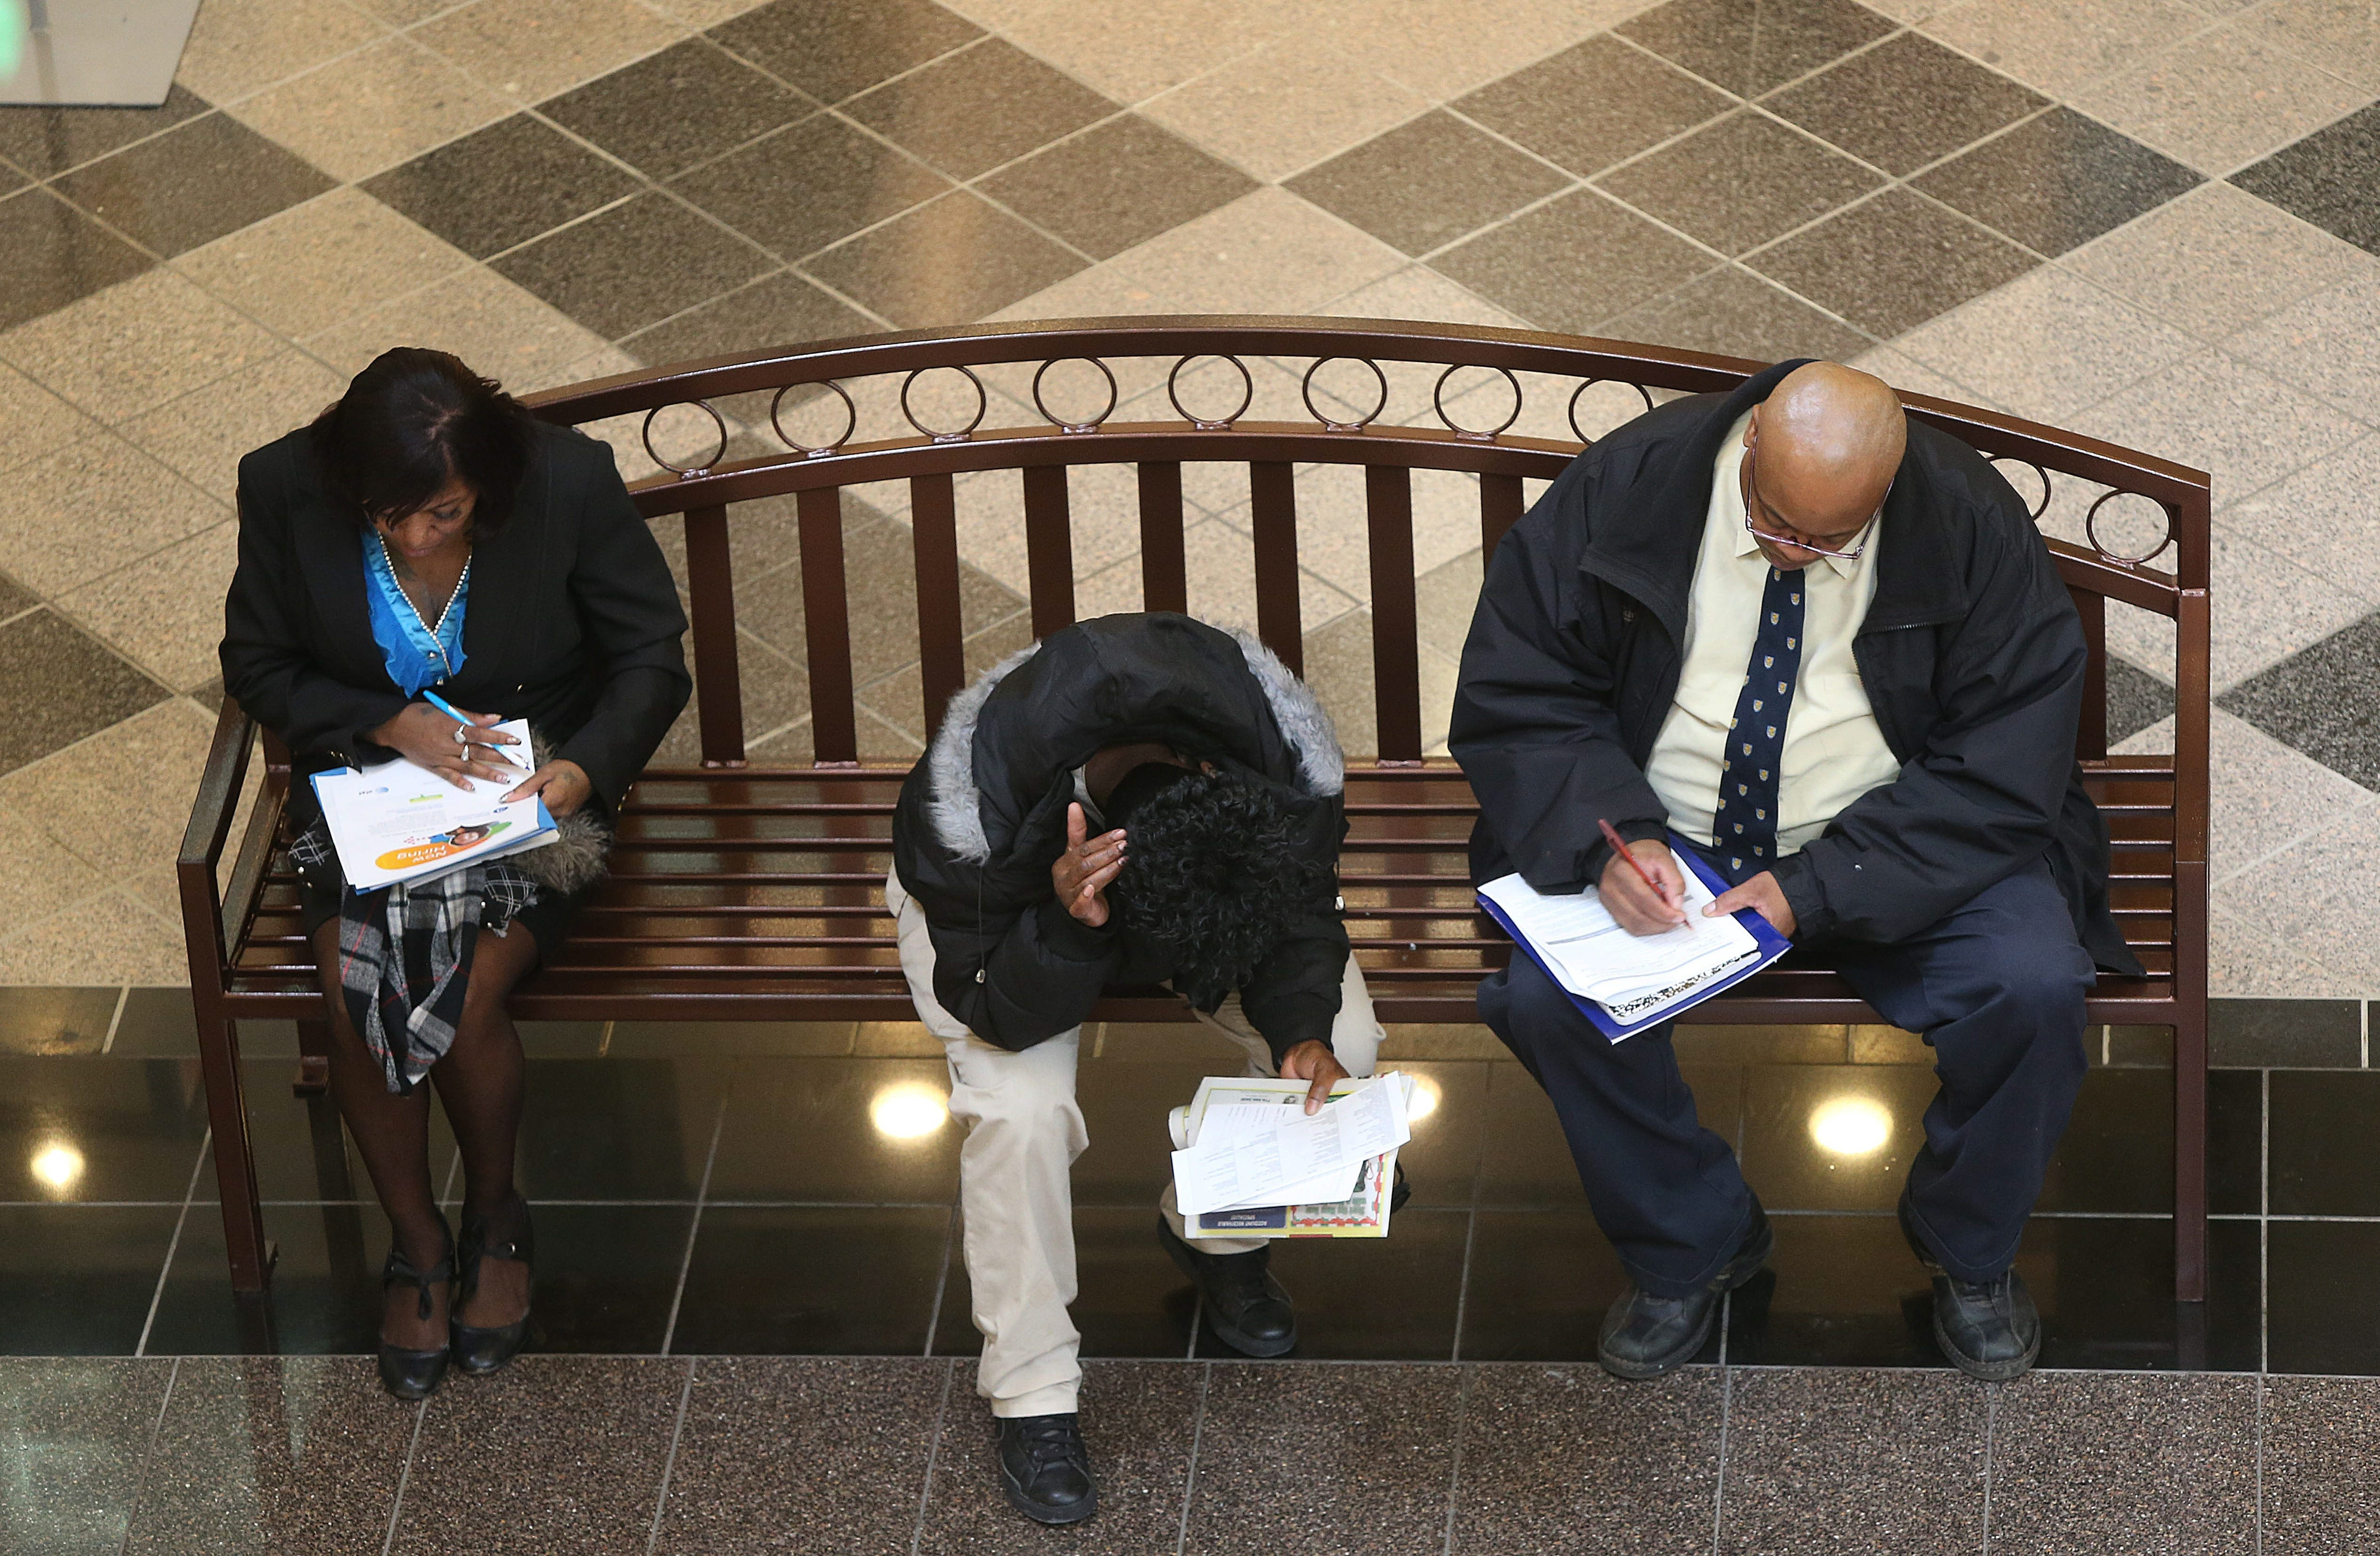 Job-seekers fille out job applications at a job fair at the Walden Galleria earlier this year. (News file photo)